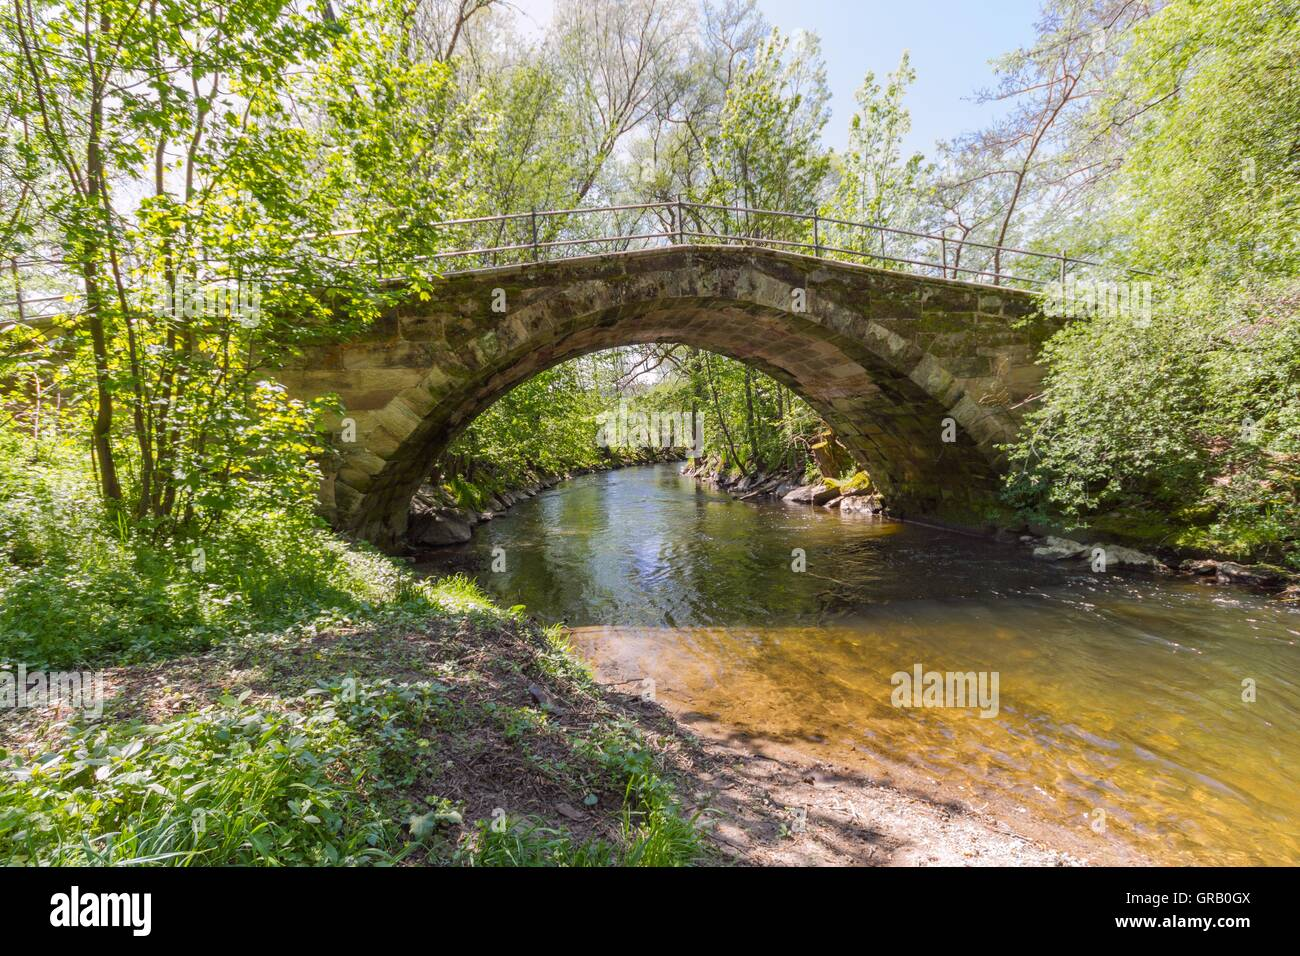 Restored, Historic Arch Bridge From The 17Th Century On The White Main At The Beginning Of The Baille-Maille Lime - Stock Image